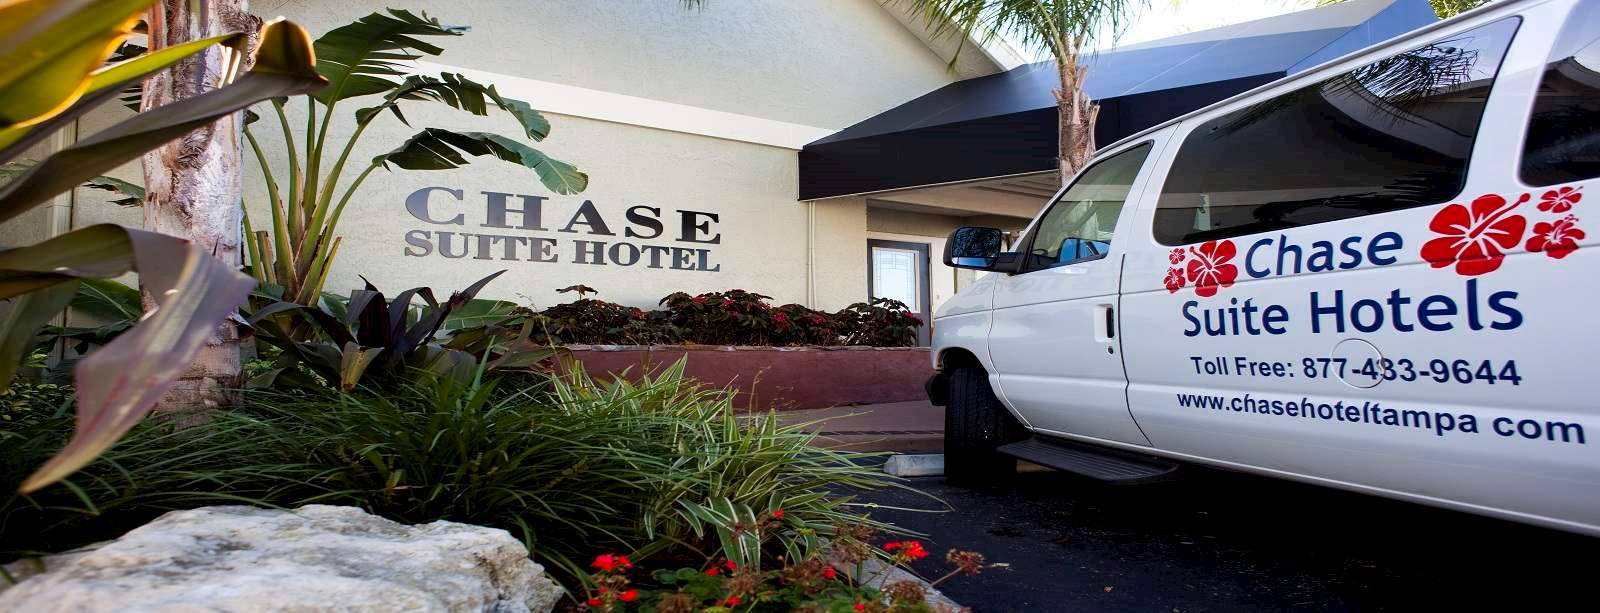 Chase Suite Hotel Tampa, Florida